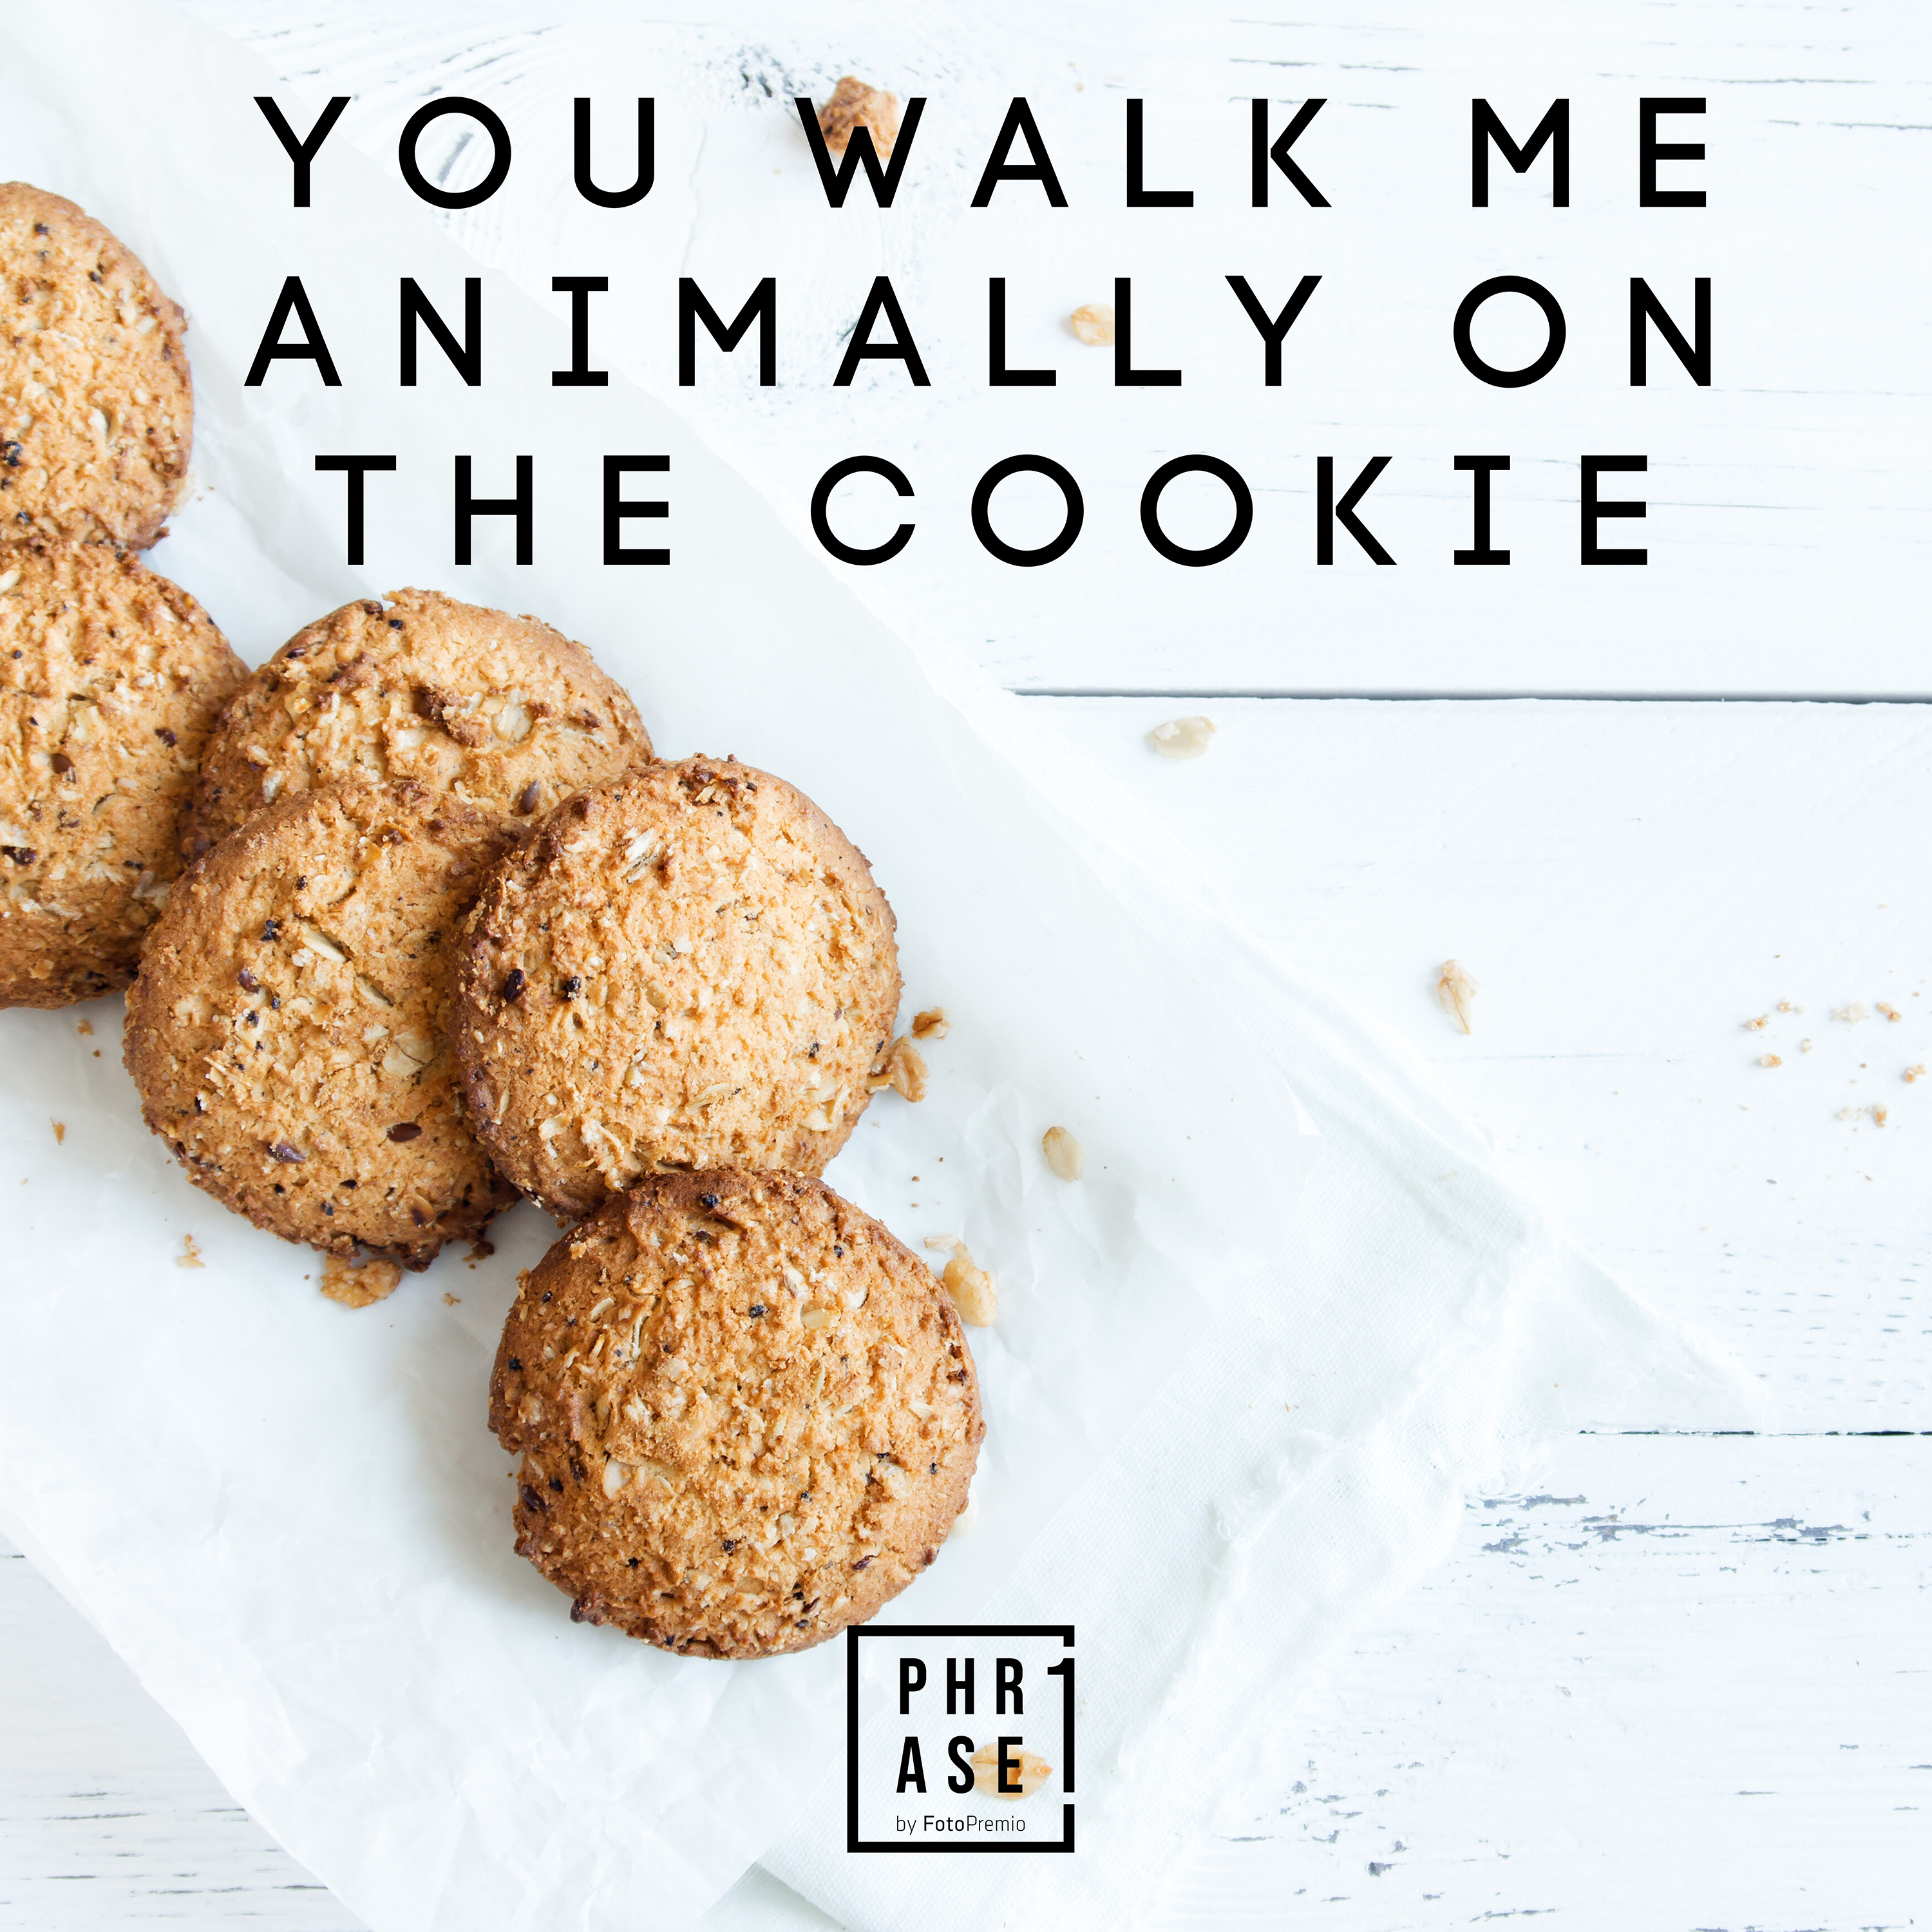 You walk me animally on the cookie